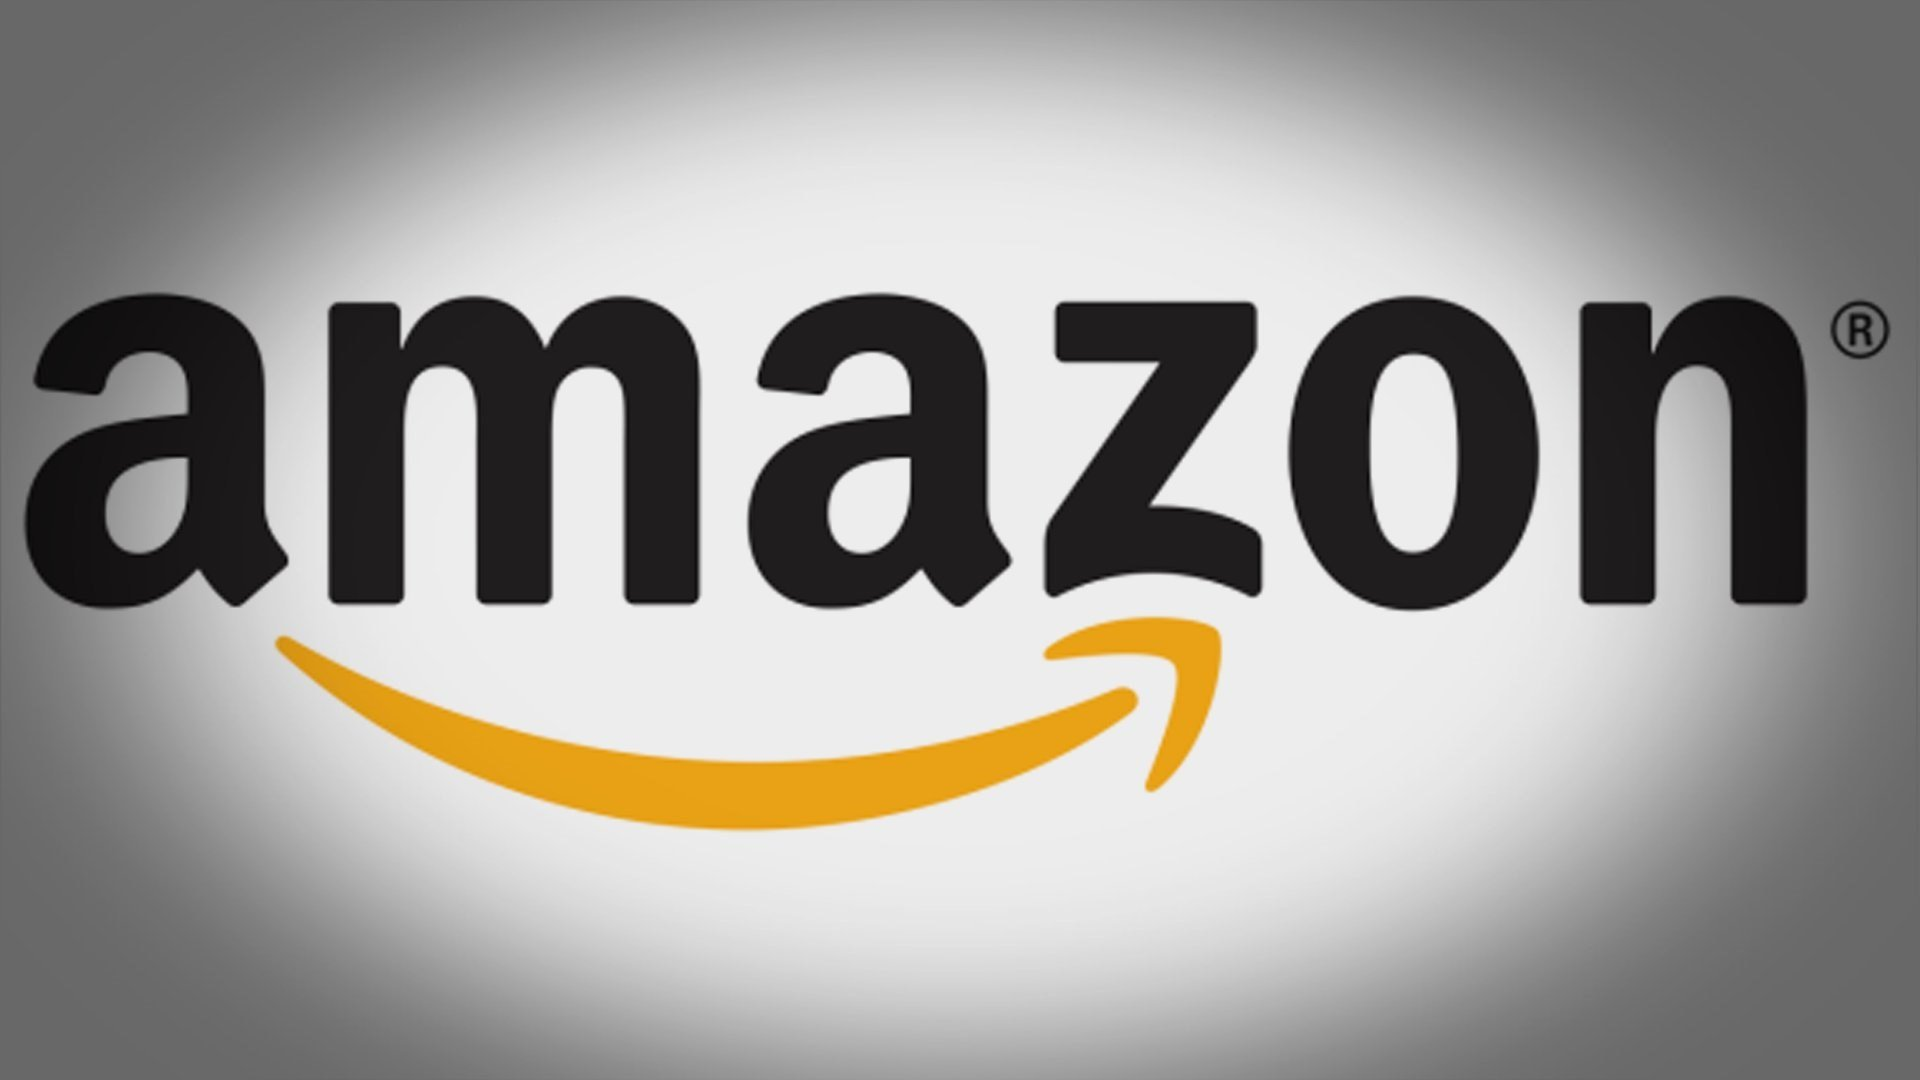 Amazon has announced plans to open a second headquarters in North America that will employ as many as 50,000 workers